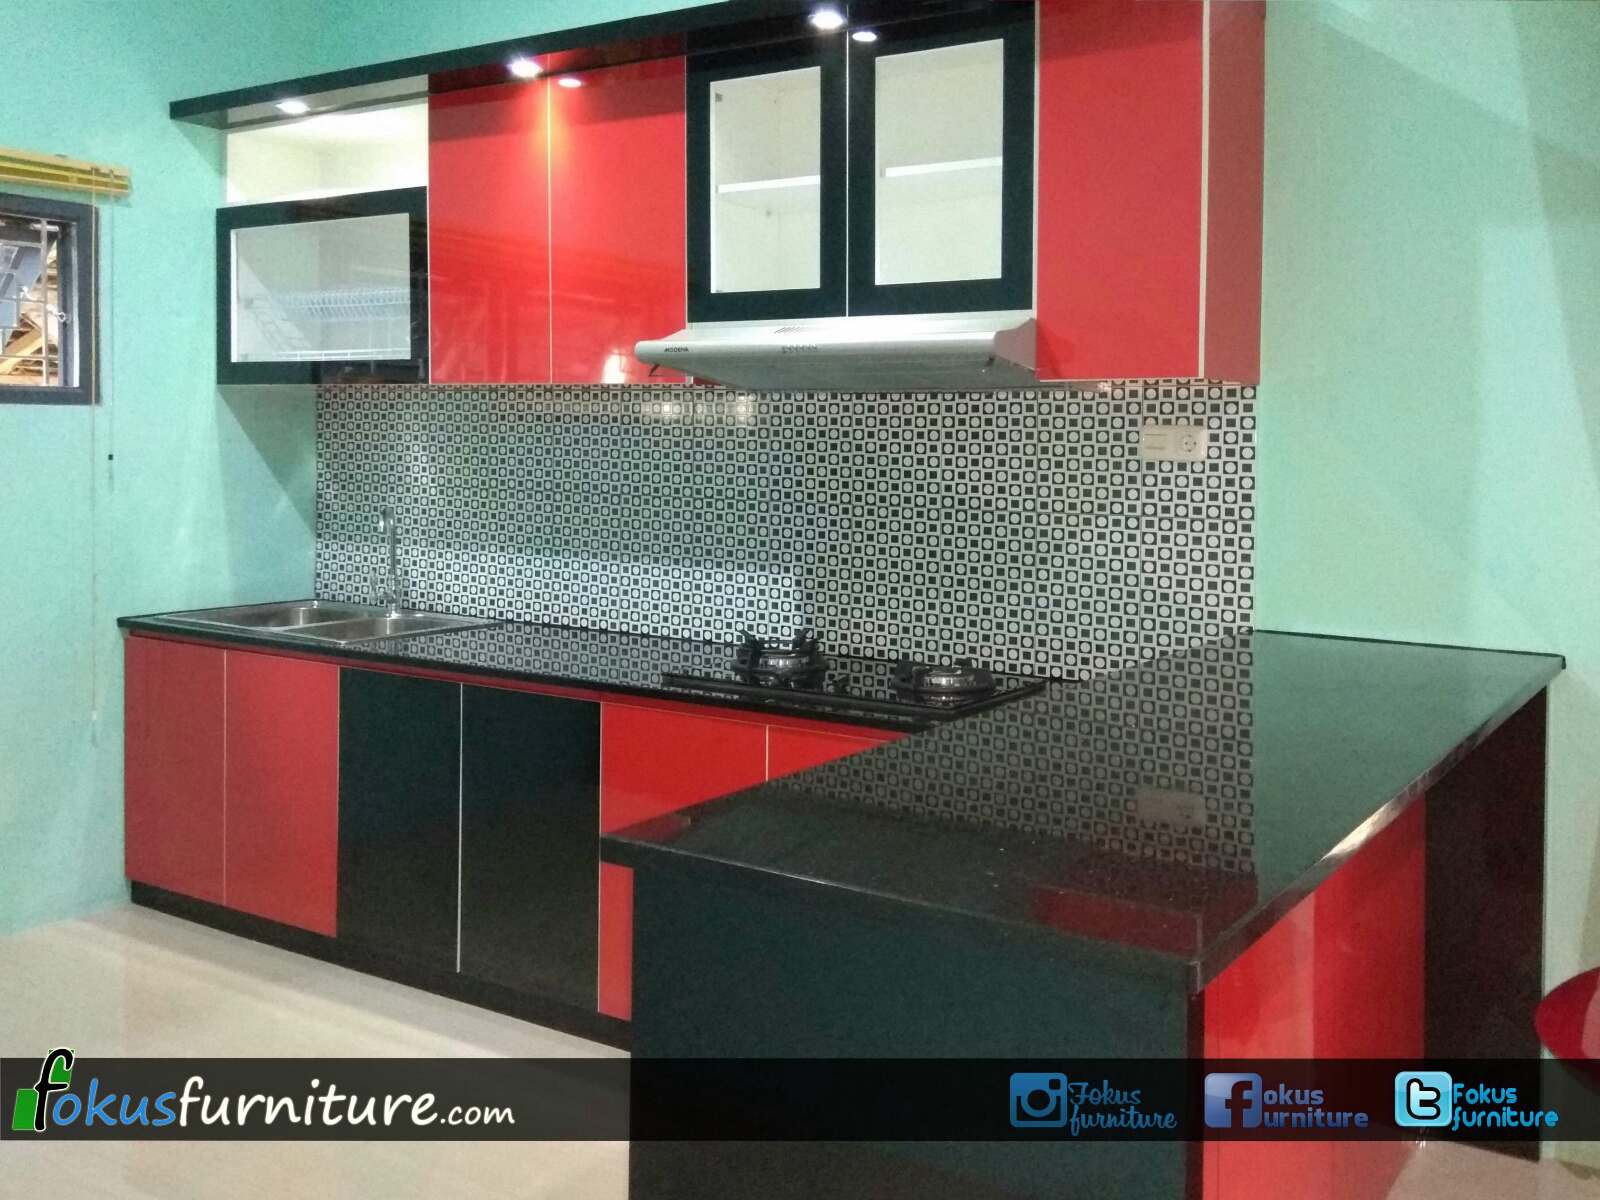 Superbe Colorful Furniture Kitchen Set Image   Home Design Ideas And .